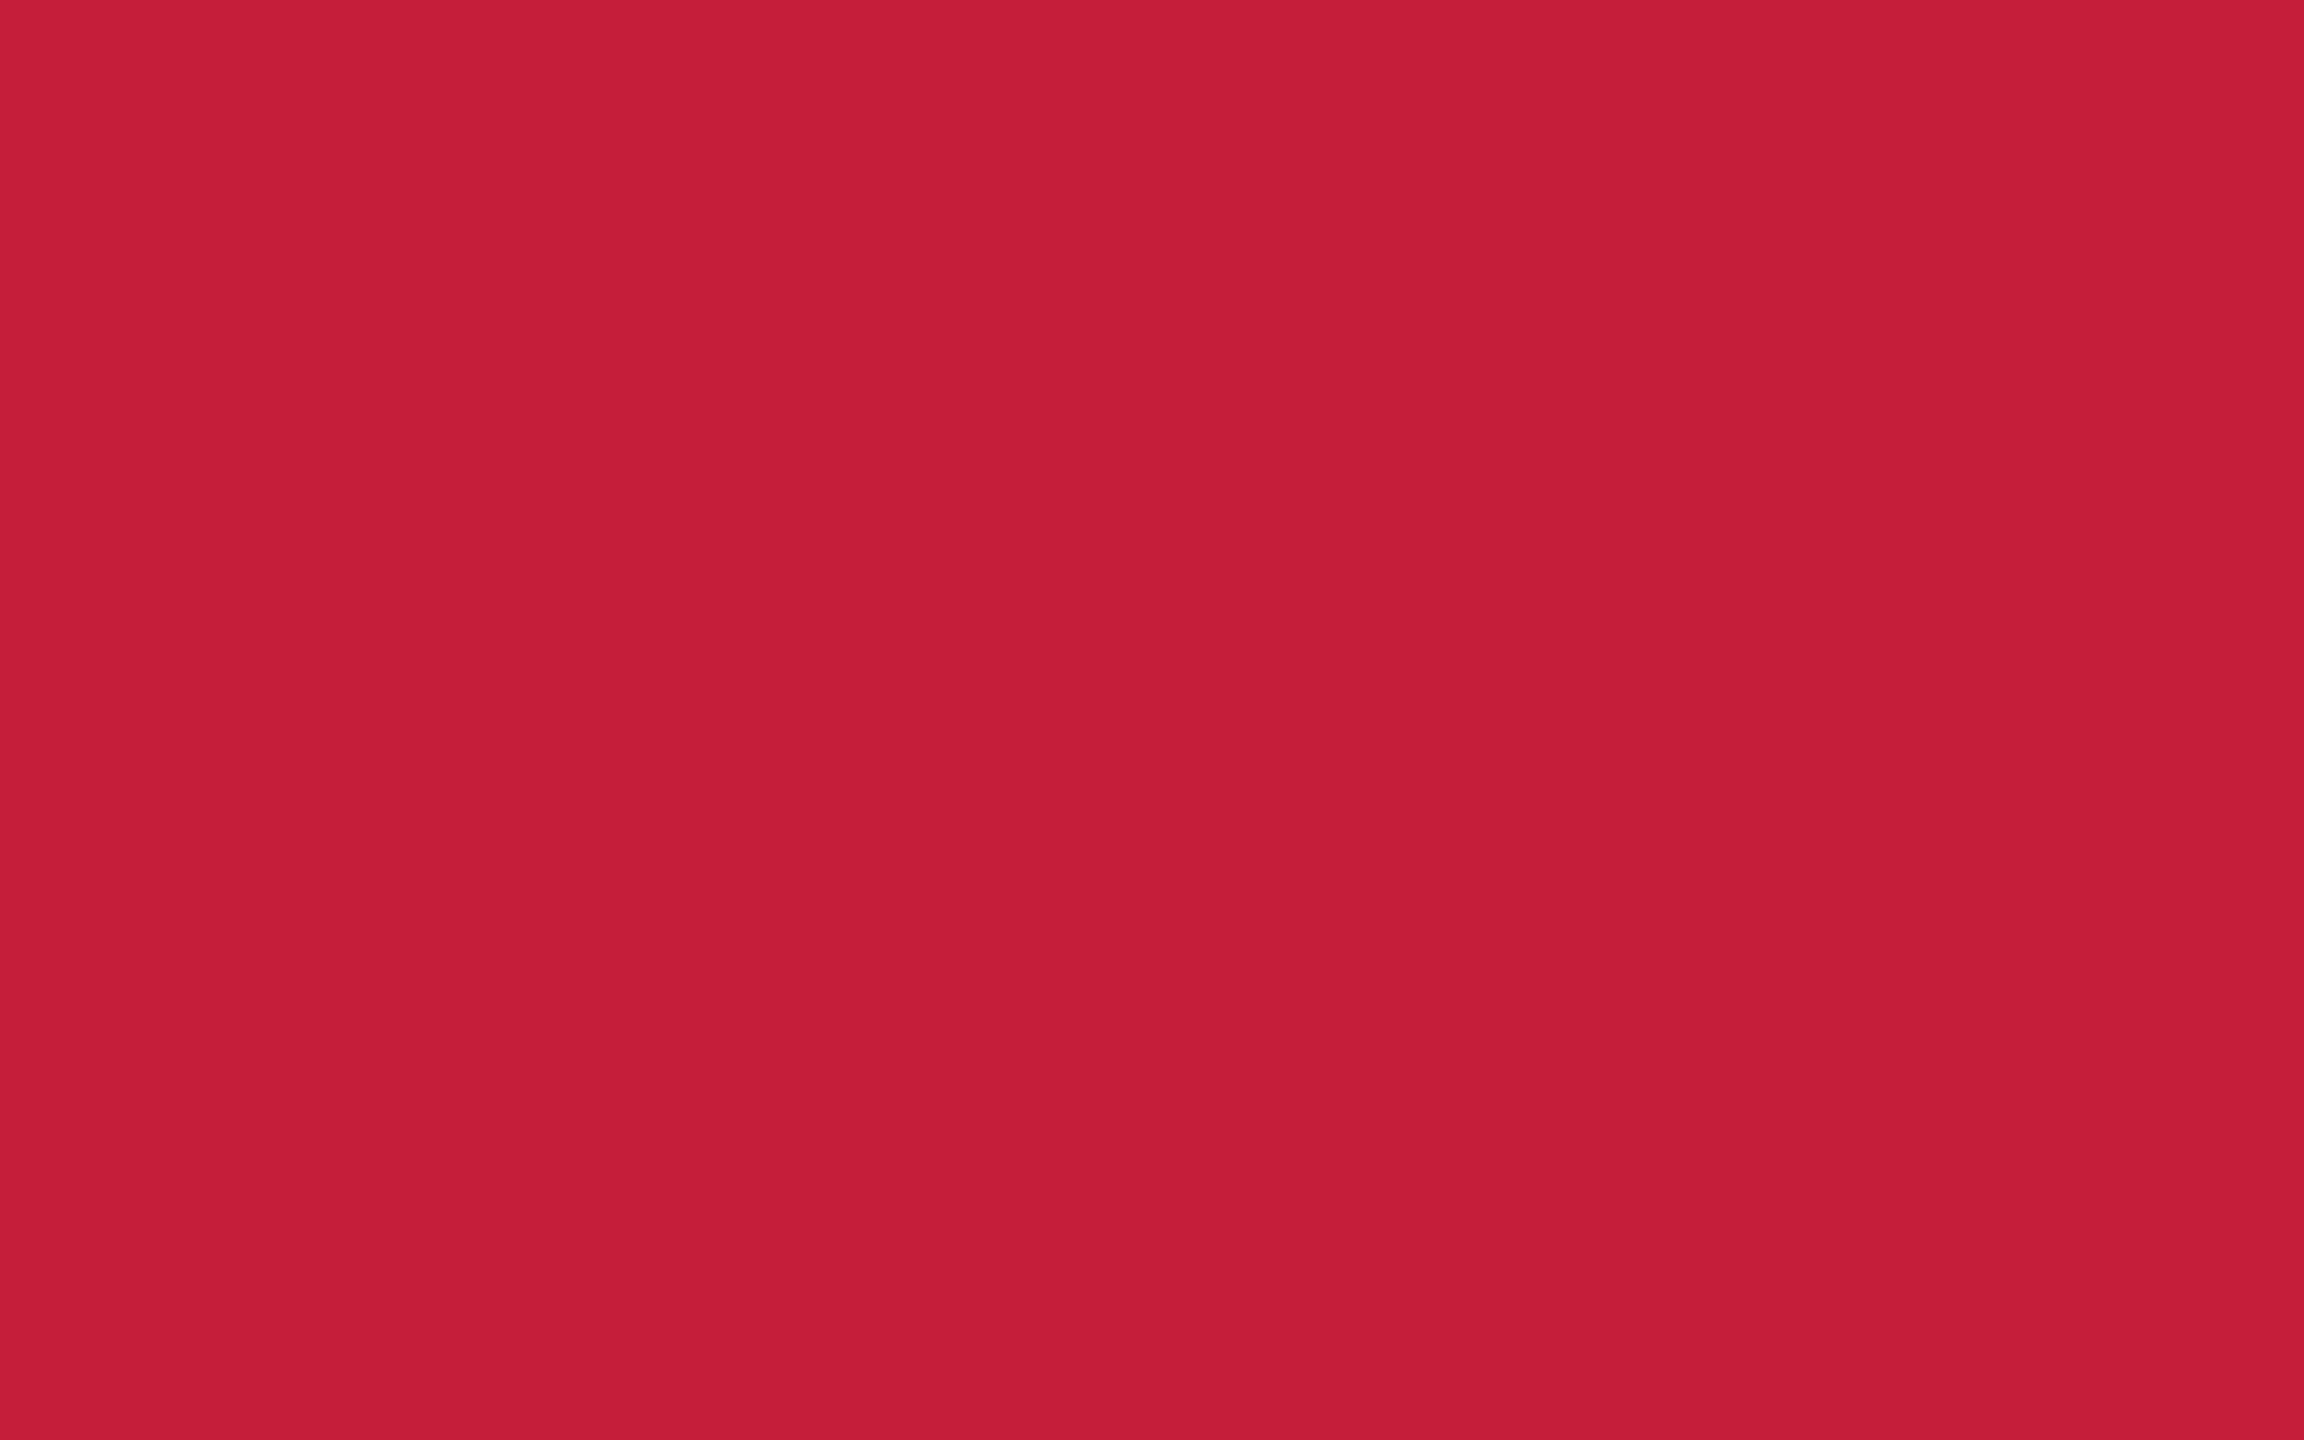 2304x1440 Cardinal Solid Color Background